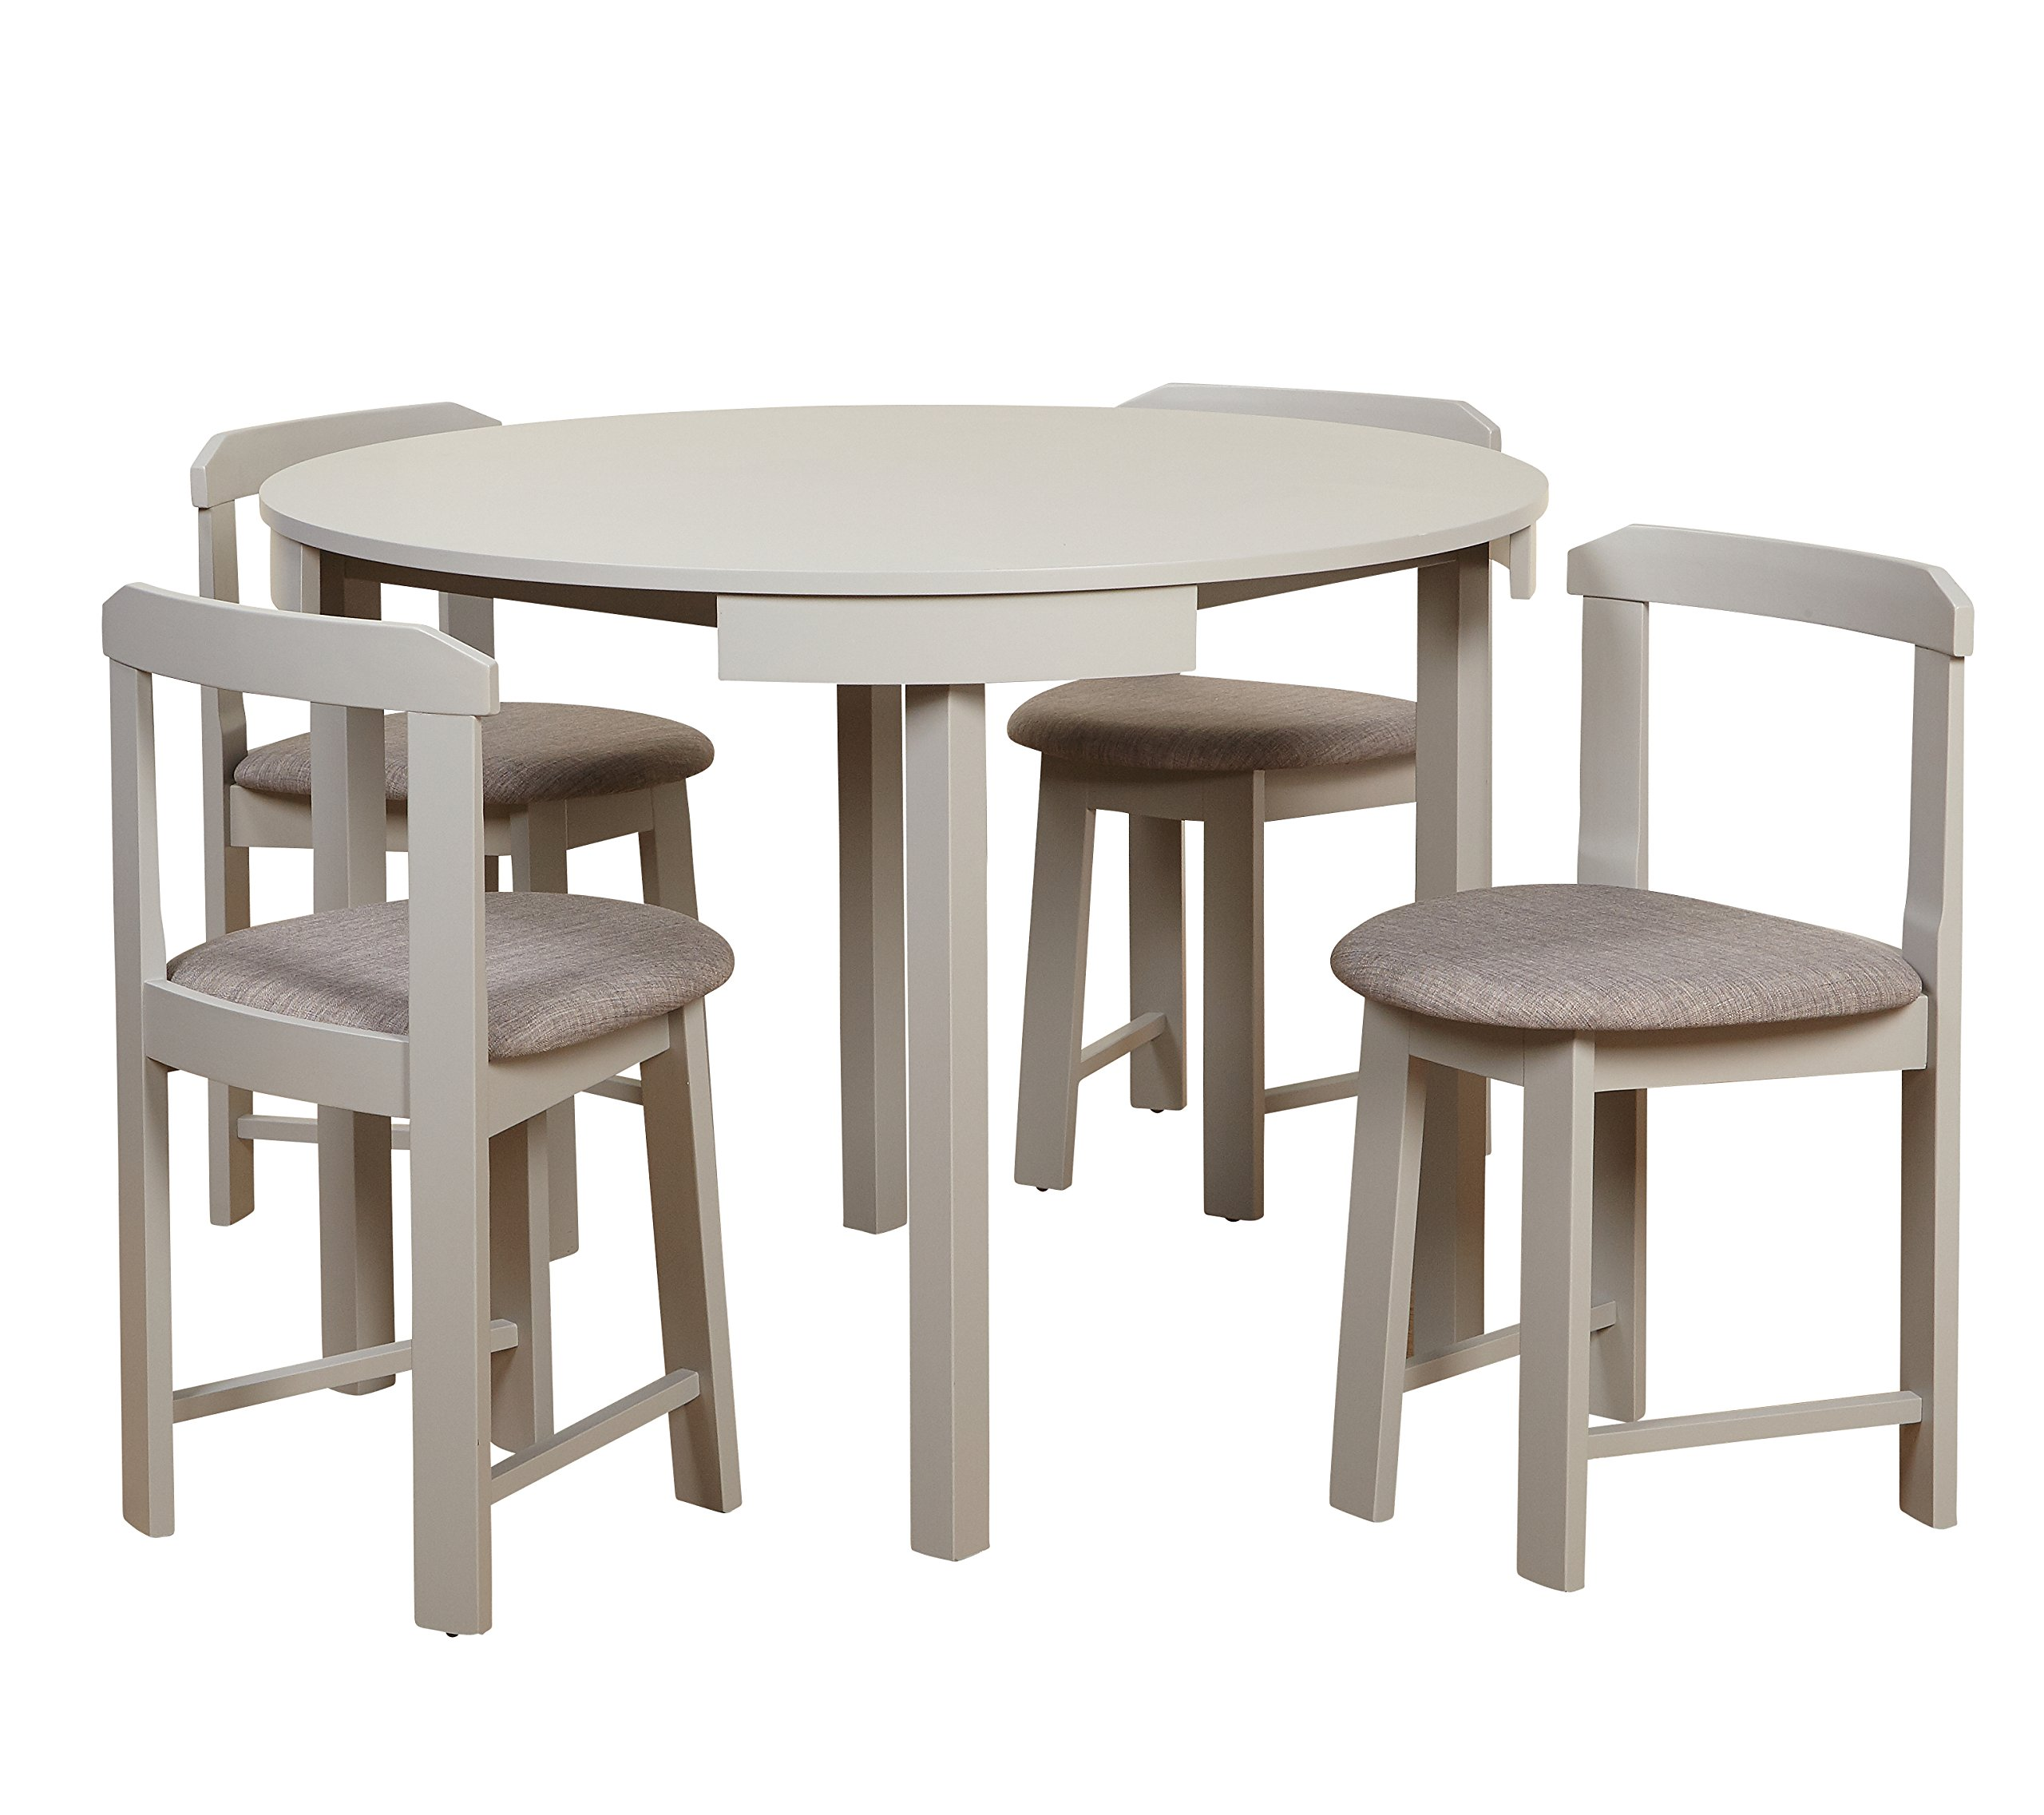 Target Marketing Systems 35515GRY Zuma Collection Compact Set 5-Piece Round Nesting Dining Table & Chairs, Gray by Target Marketing Systems